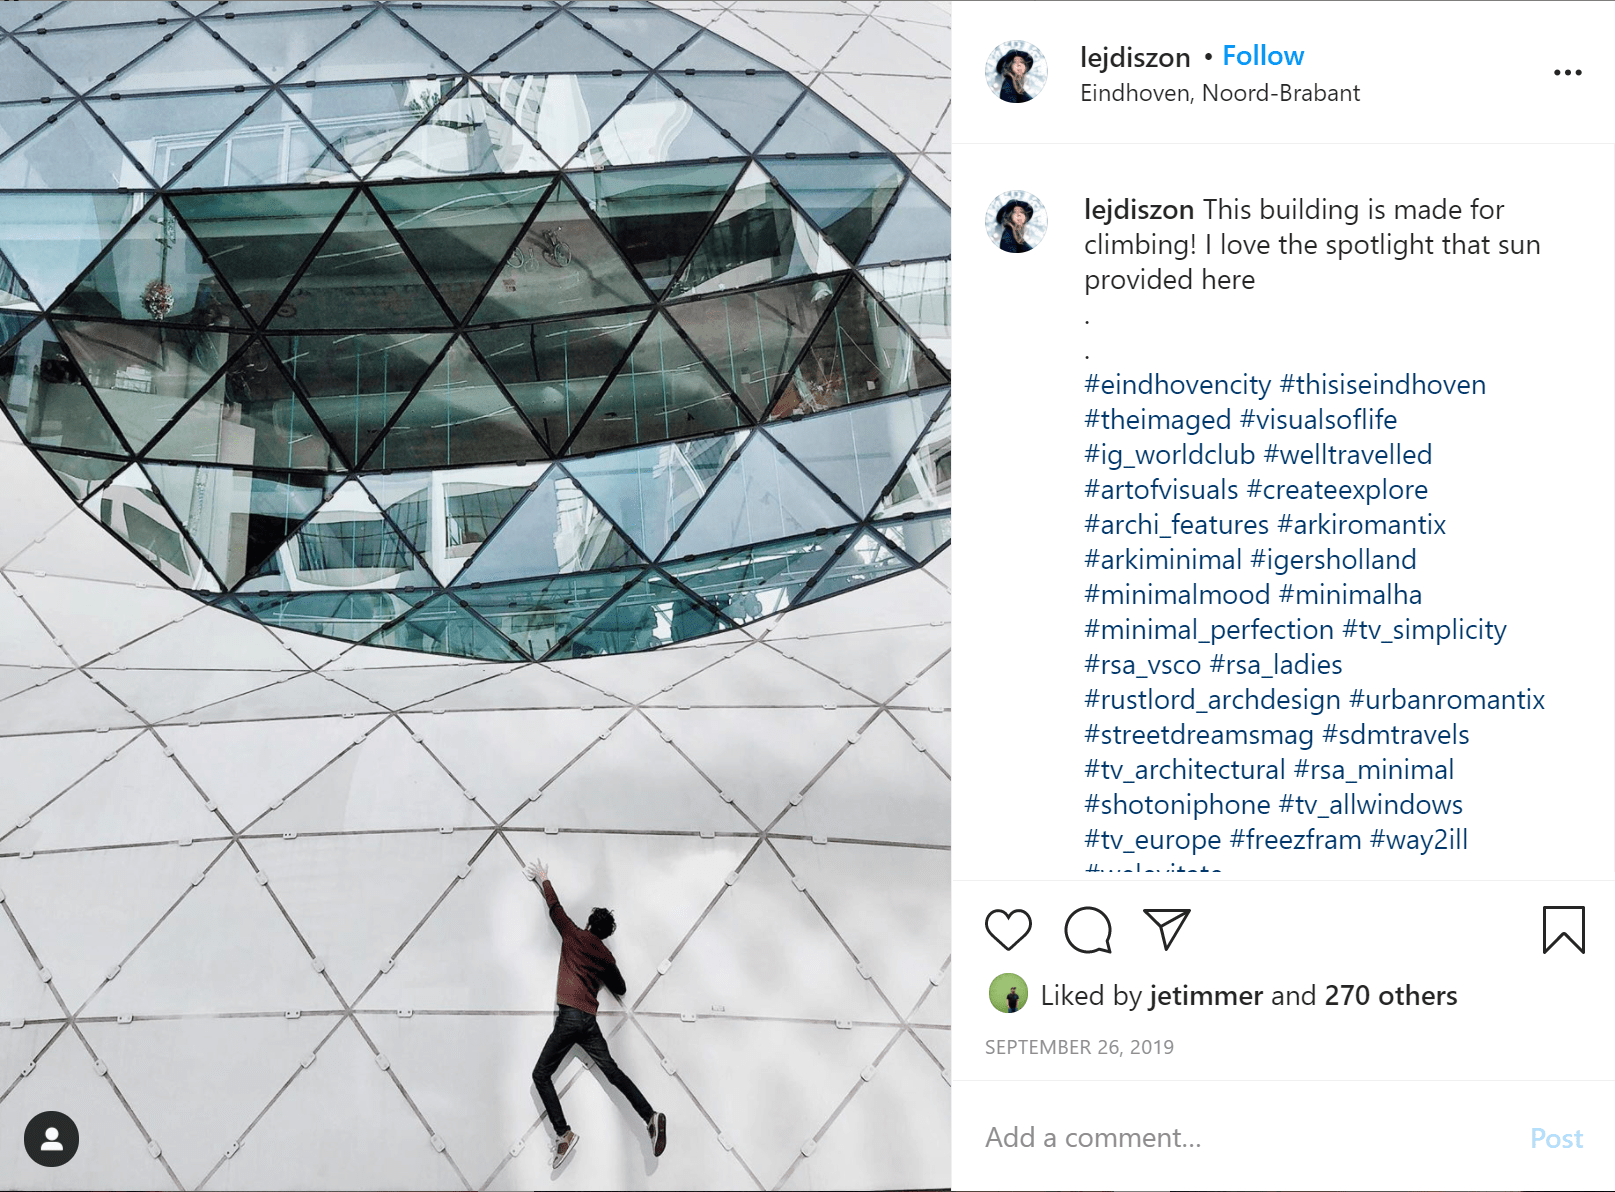 man wearing black jumping and reaching upwards in front of De Blob in Eindhoven - a modern building made with triangles of glass